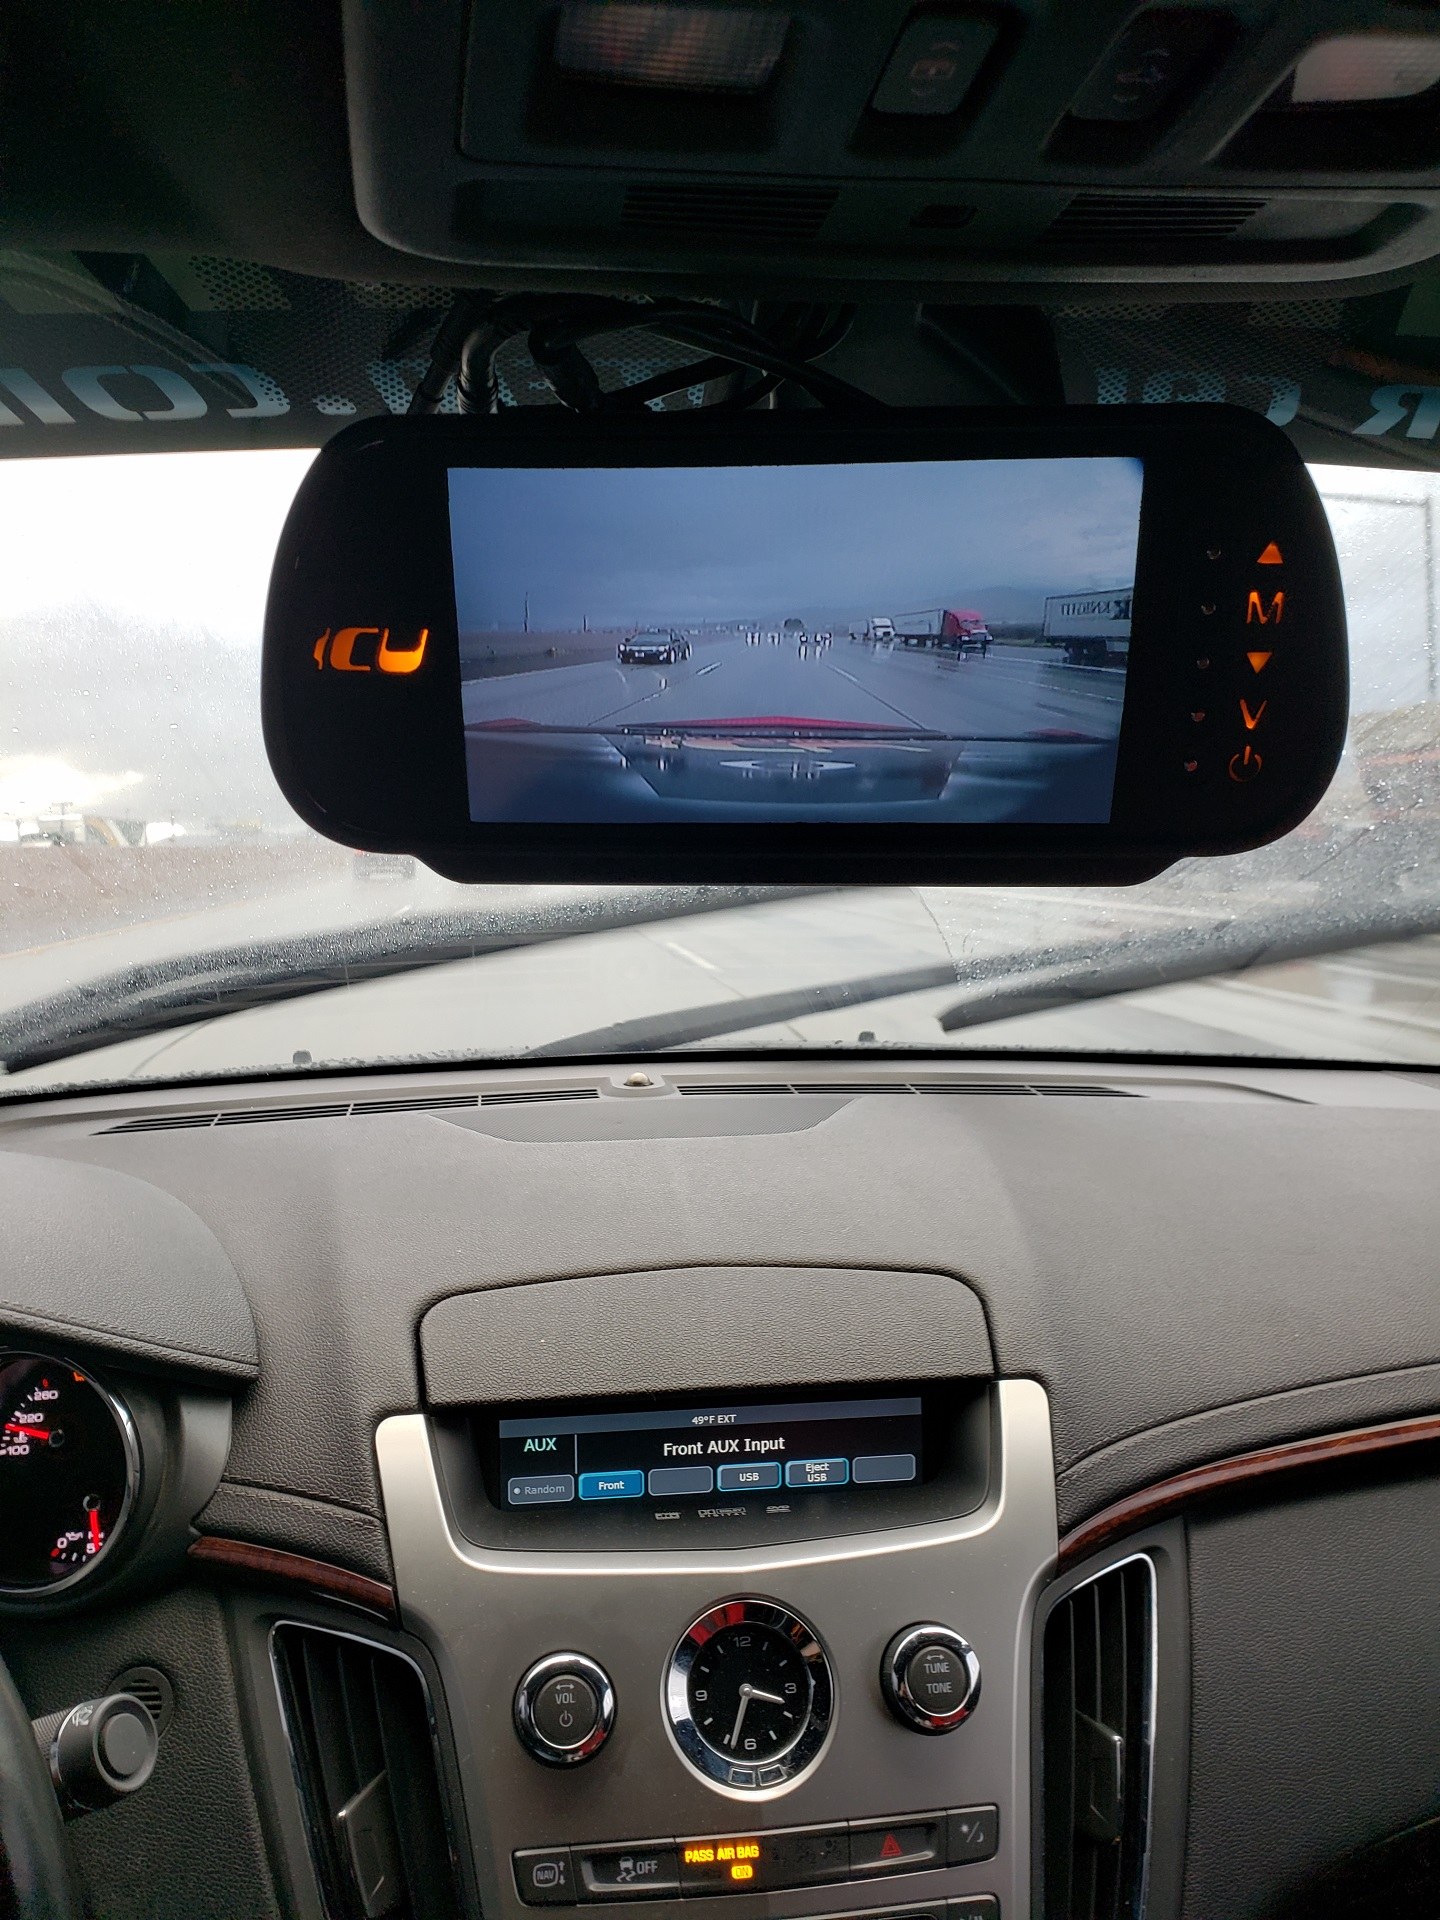 See perfectly behind your car and in your blind spots when you drive or park. The ICU Car Camera can see so well in bad weather it's like driving on a sunny day!